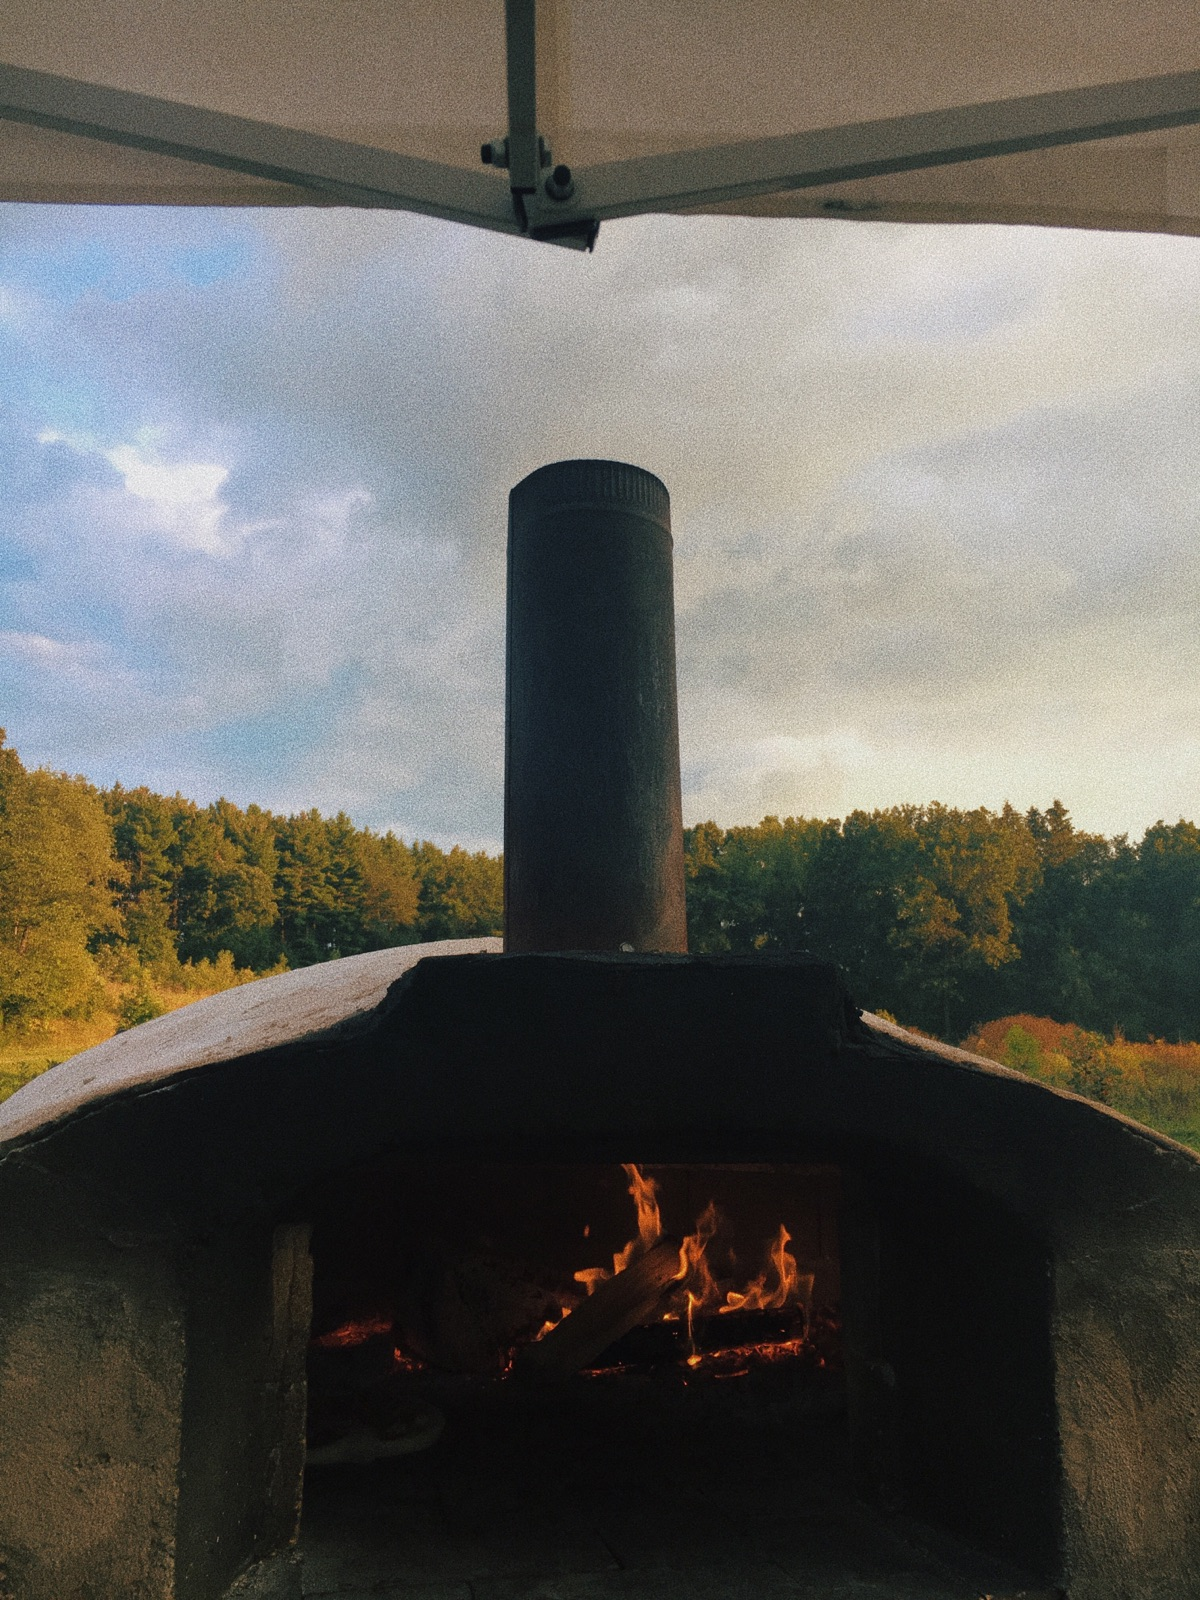 WOOD FIRED PIZZA OVEN BUILT ON OLD MILITARY TRAILER